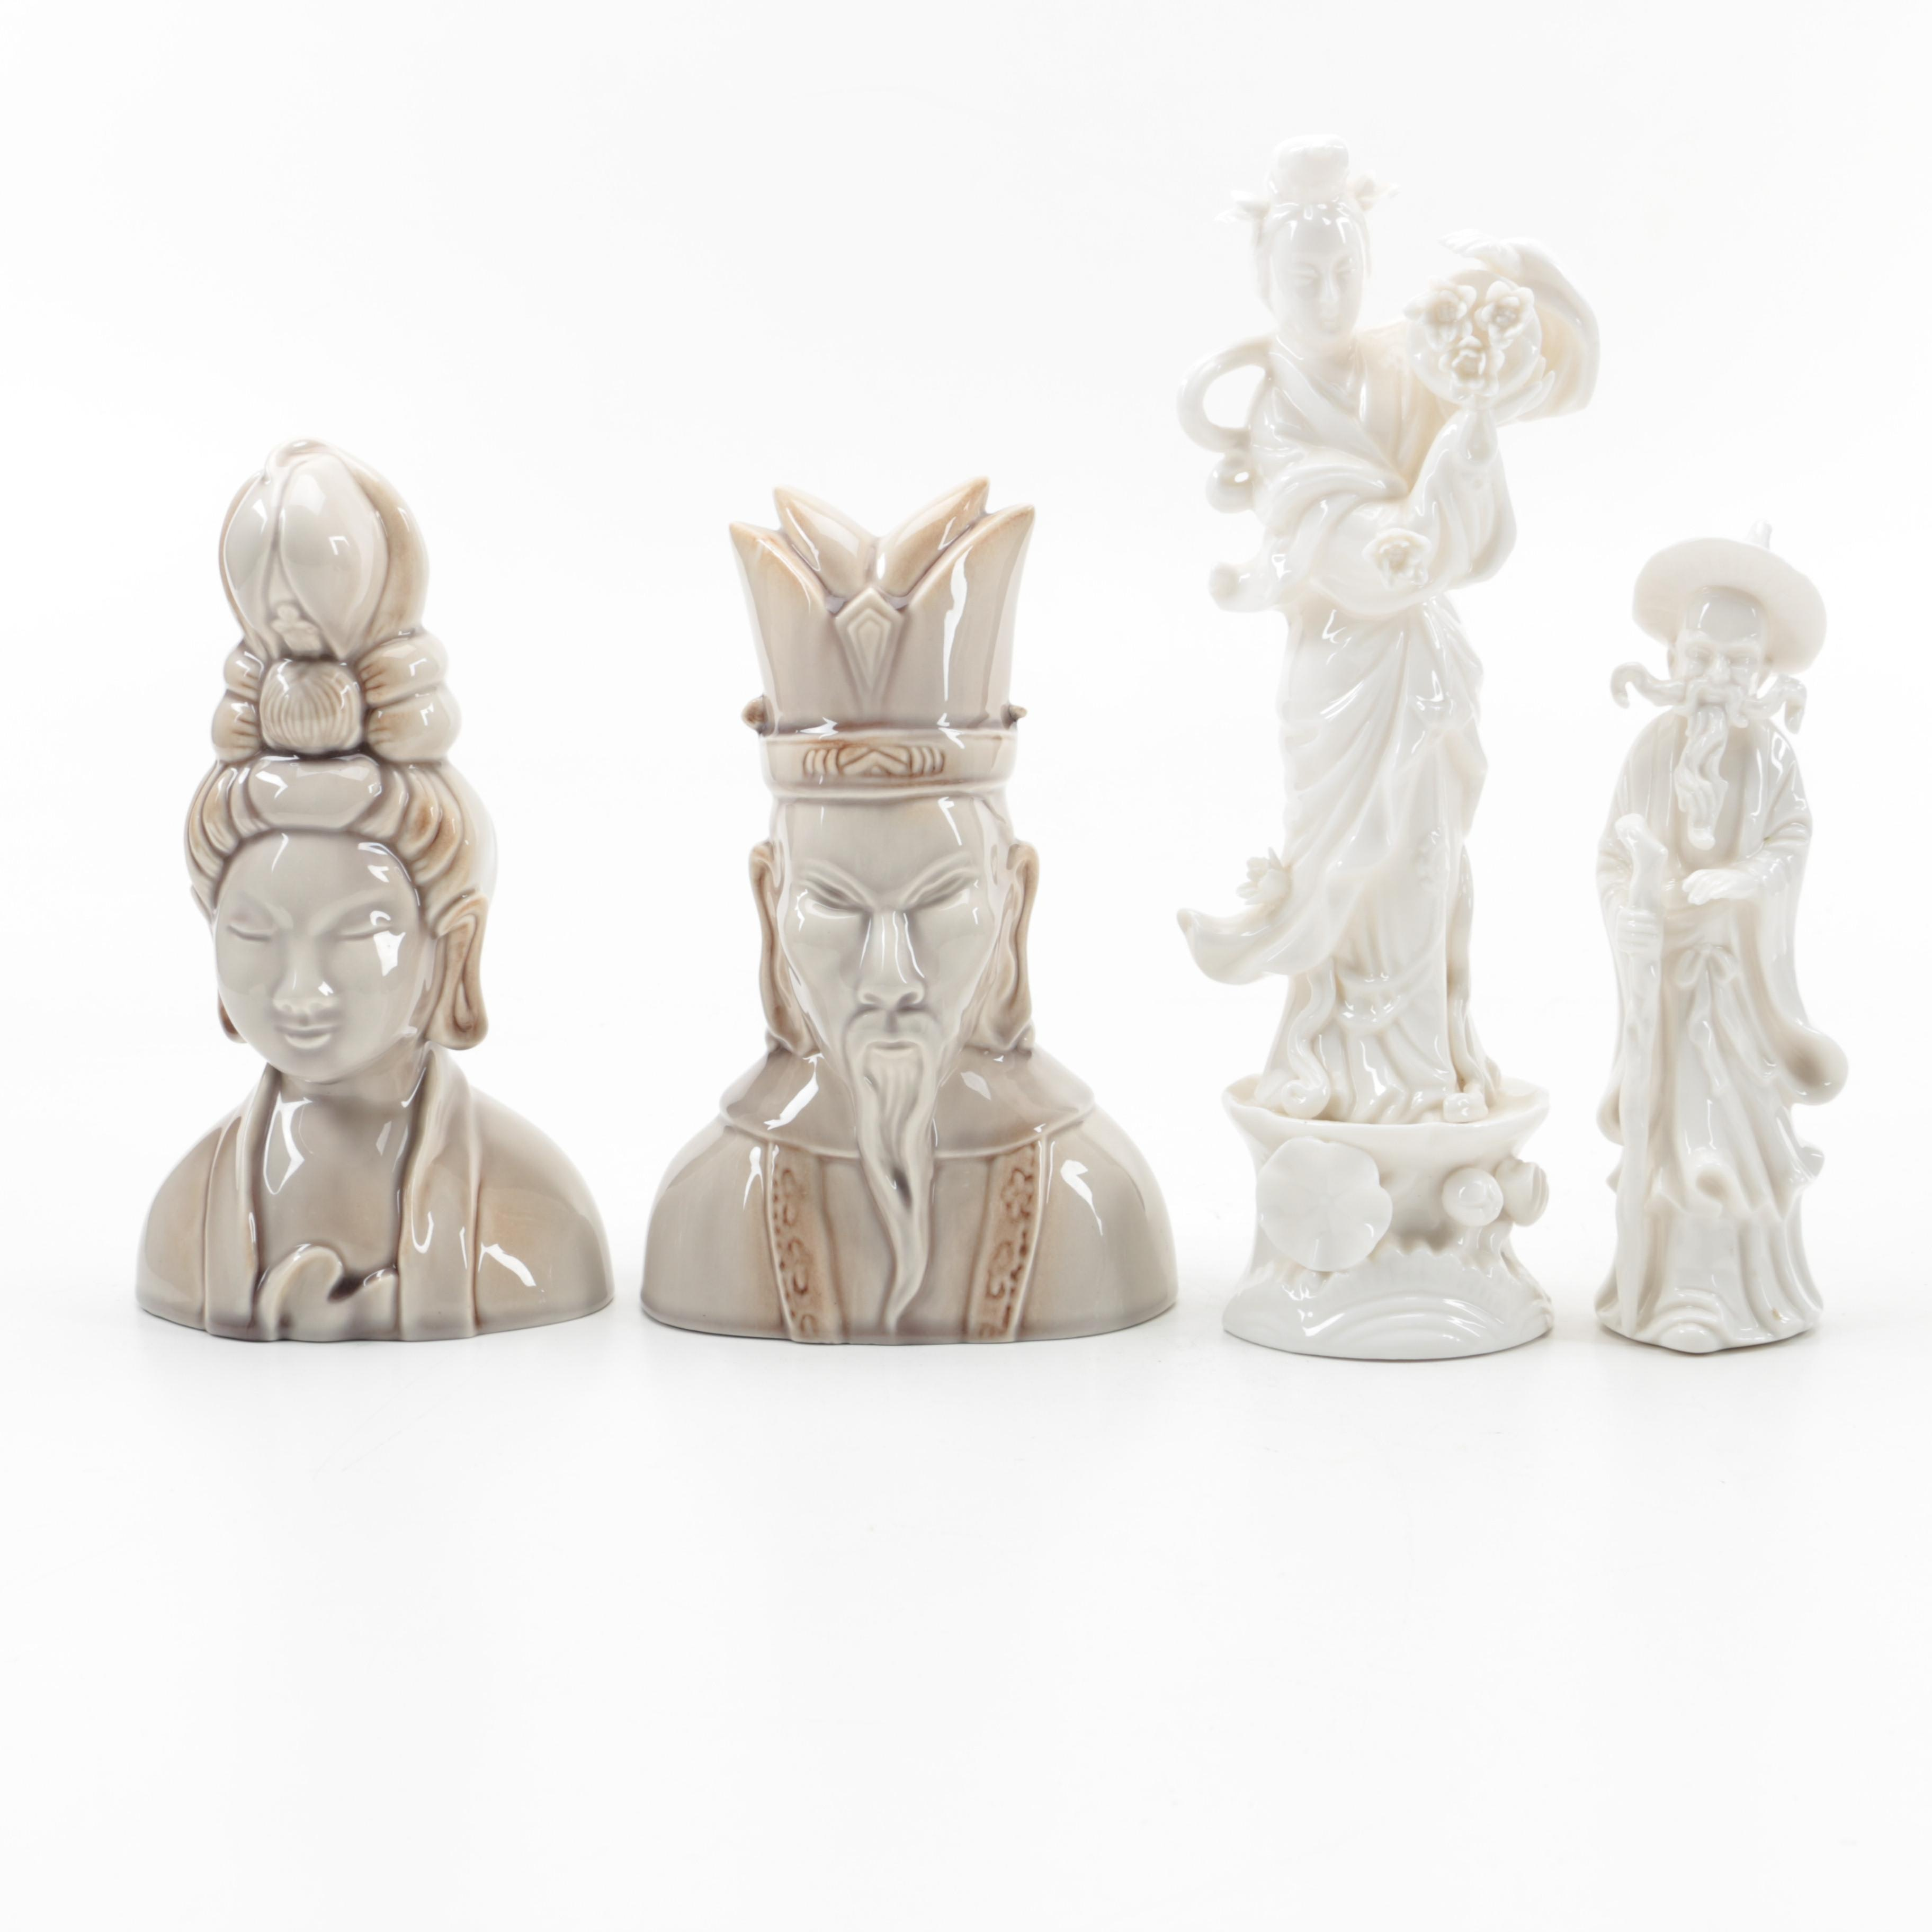 Assortment of Asian Inspired Ceramic Home Decor